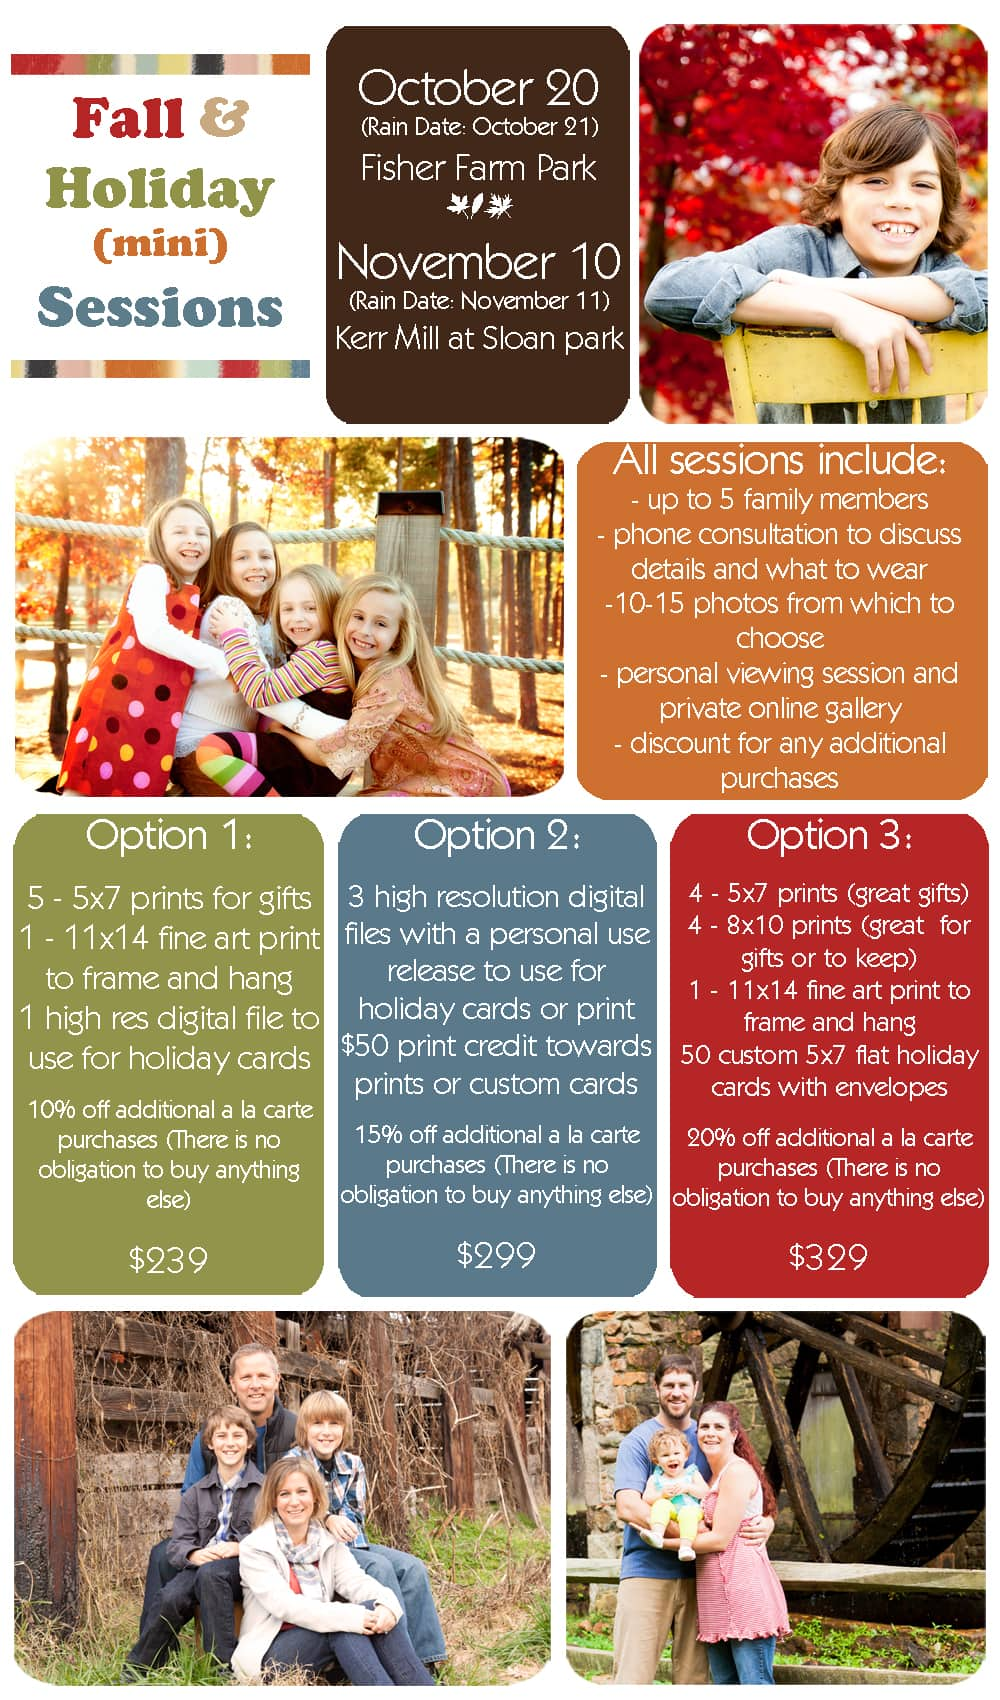 Fall and Holiday Mini Sessions for 2012